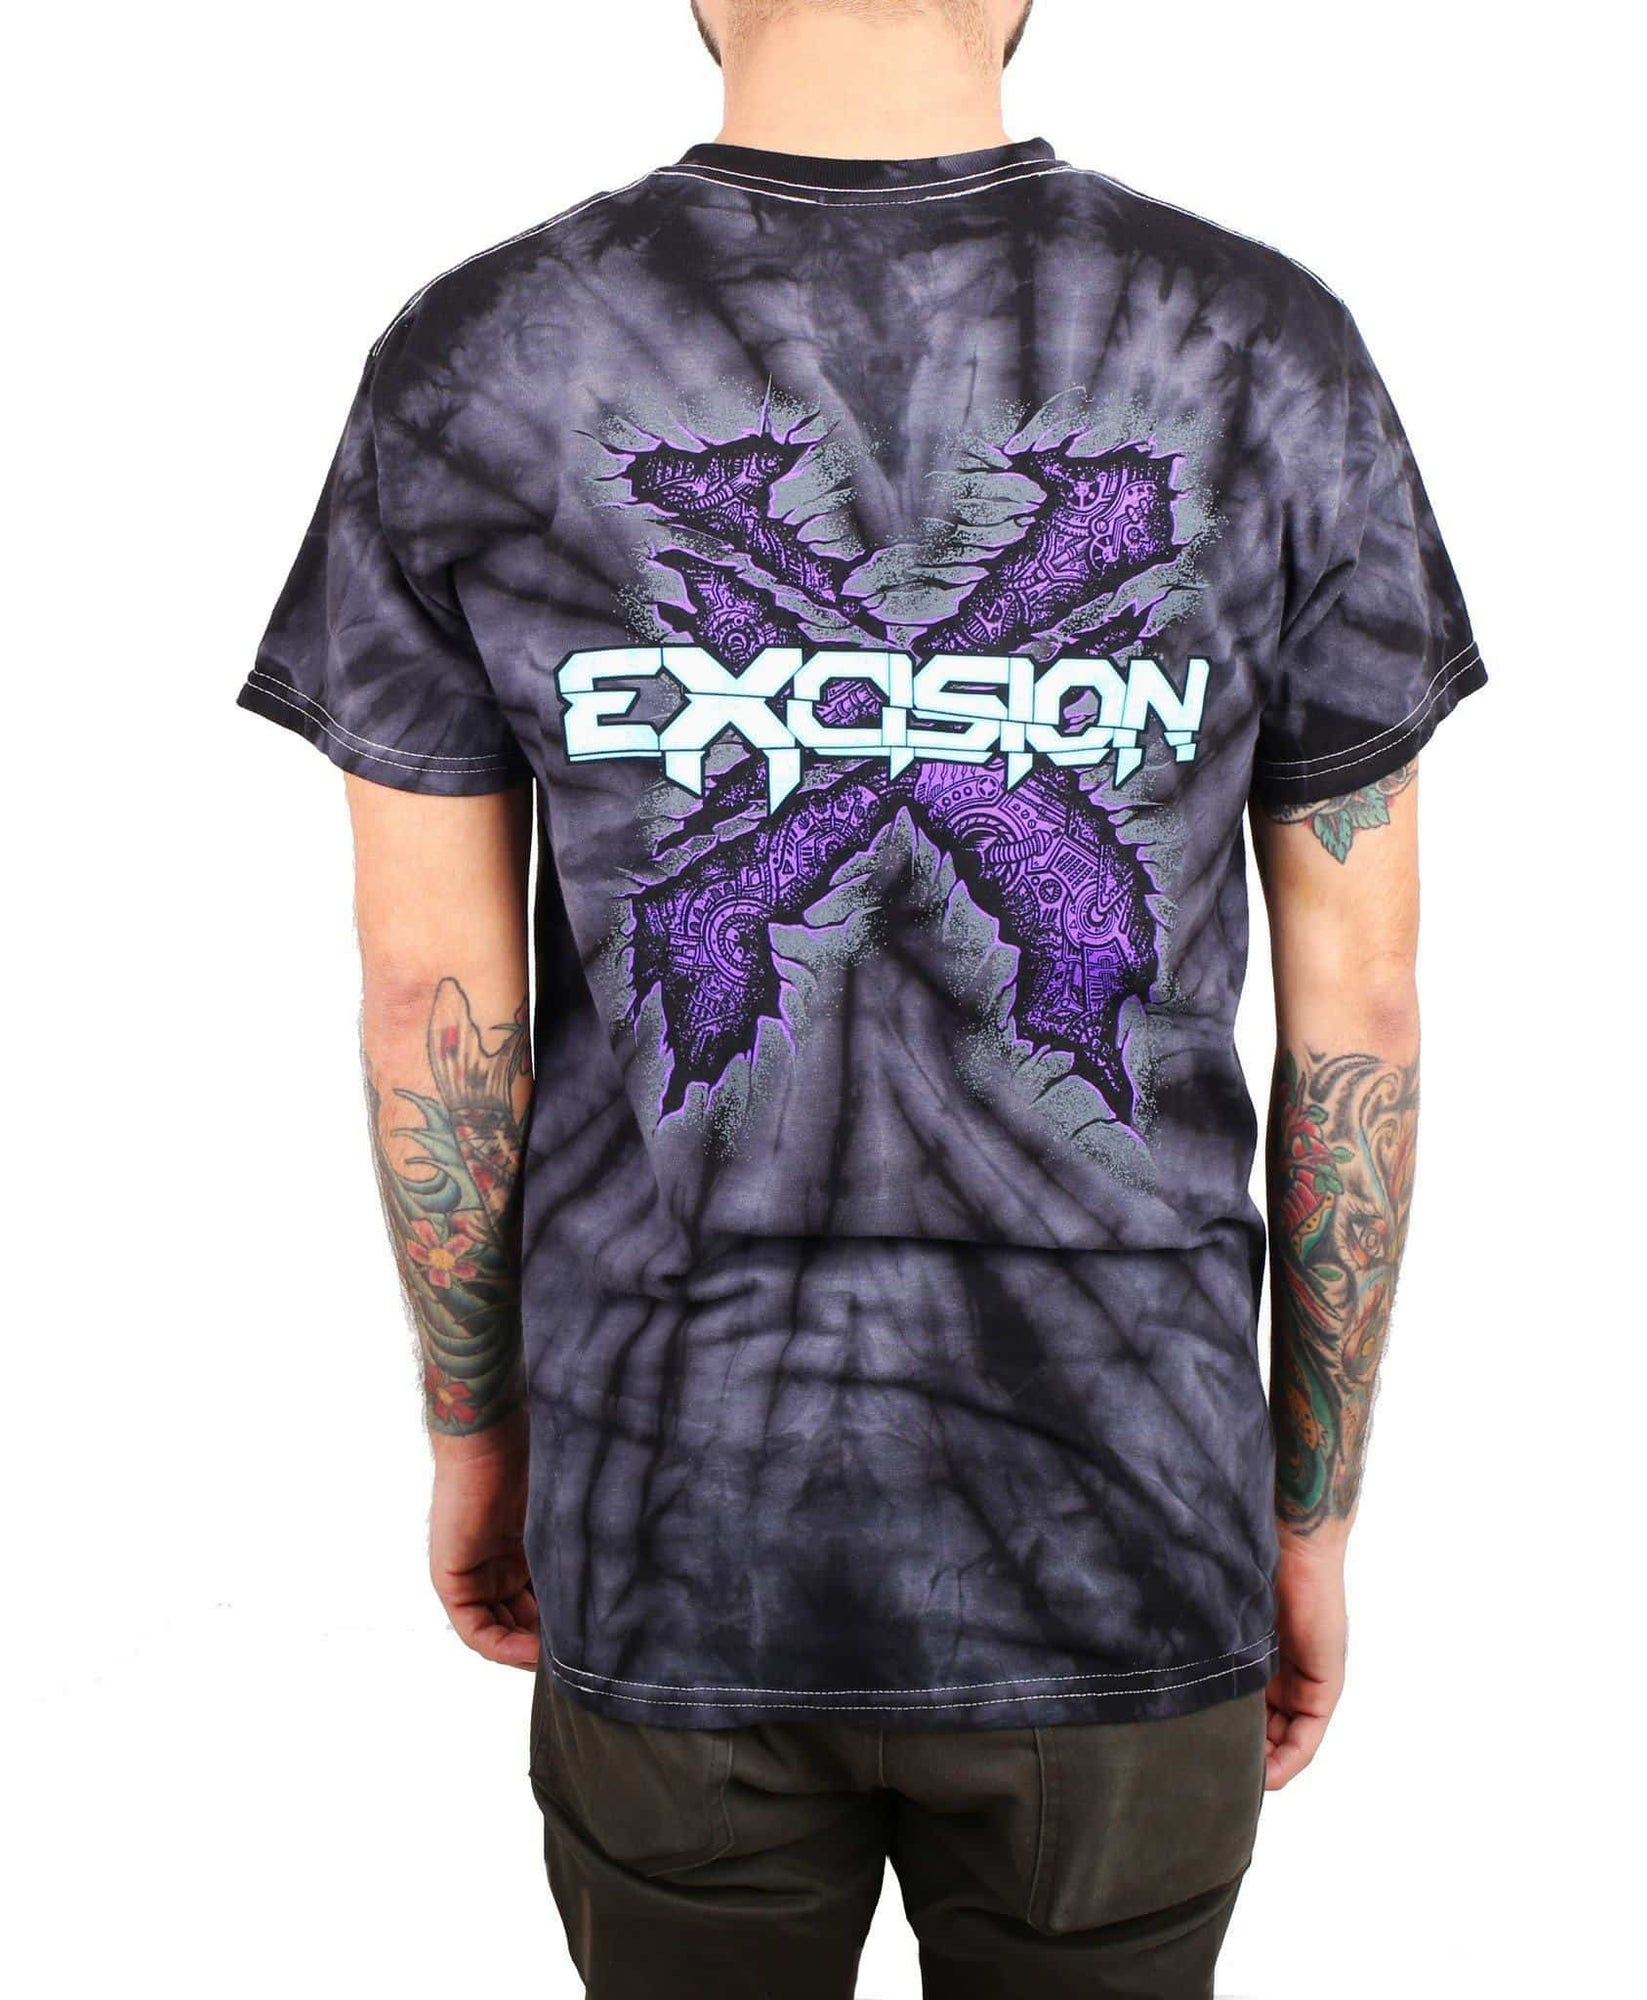 Excision 'UV Rex' Glow In The Dark Unisex T-Shirt